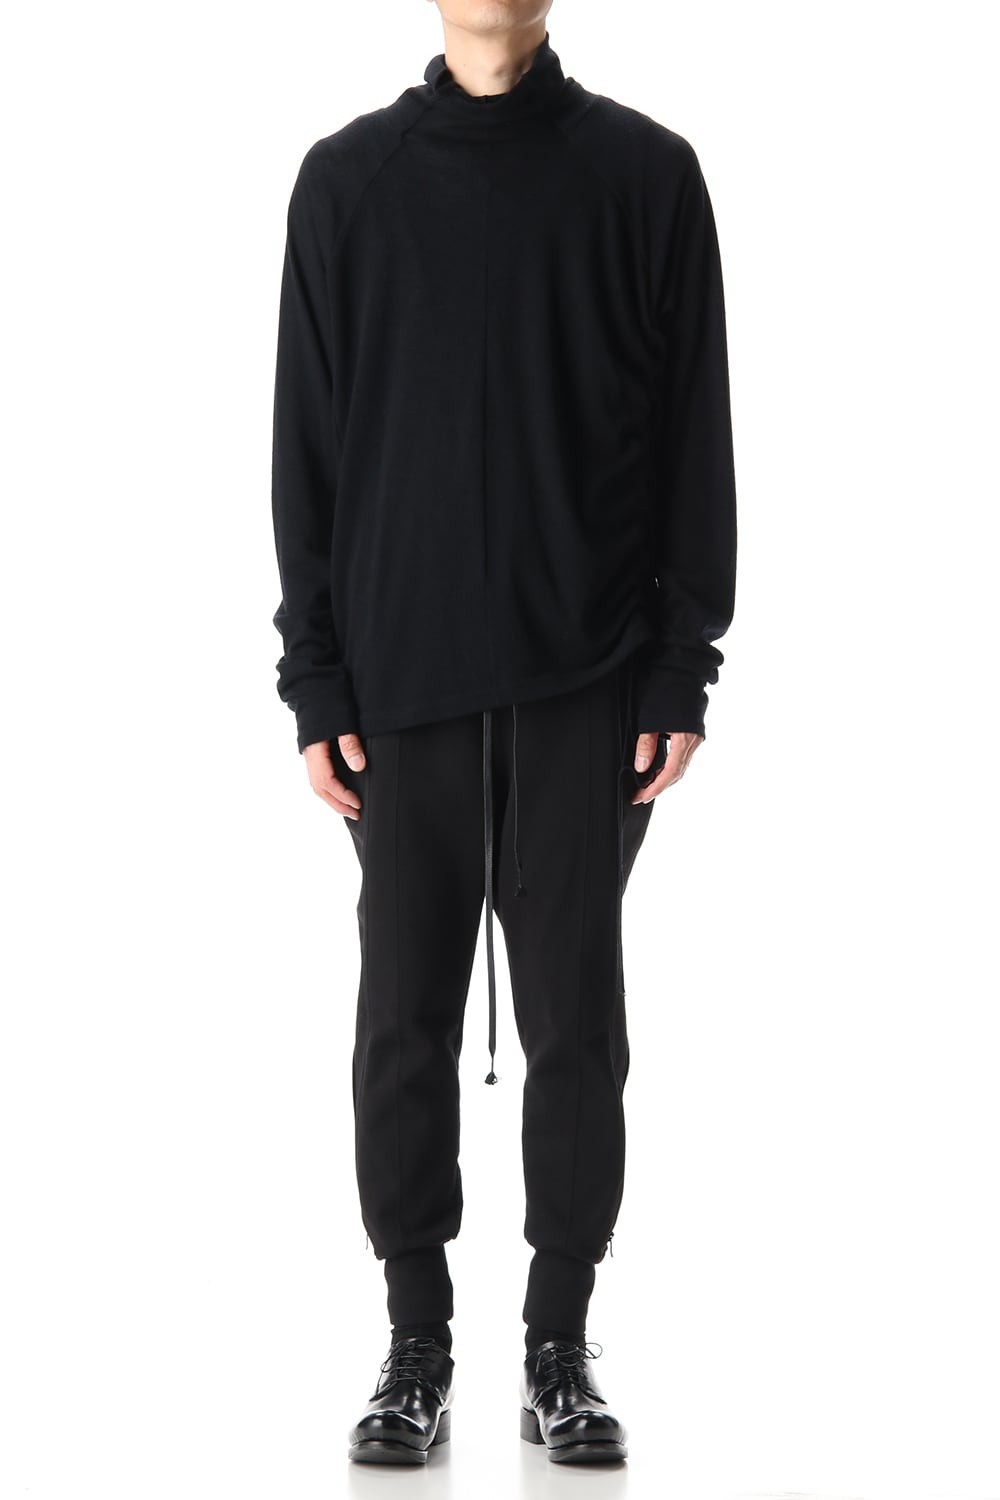 Cotton Wool Jersey Bottleneck Long Sleeve T-Shirts Black